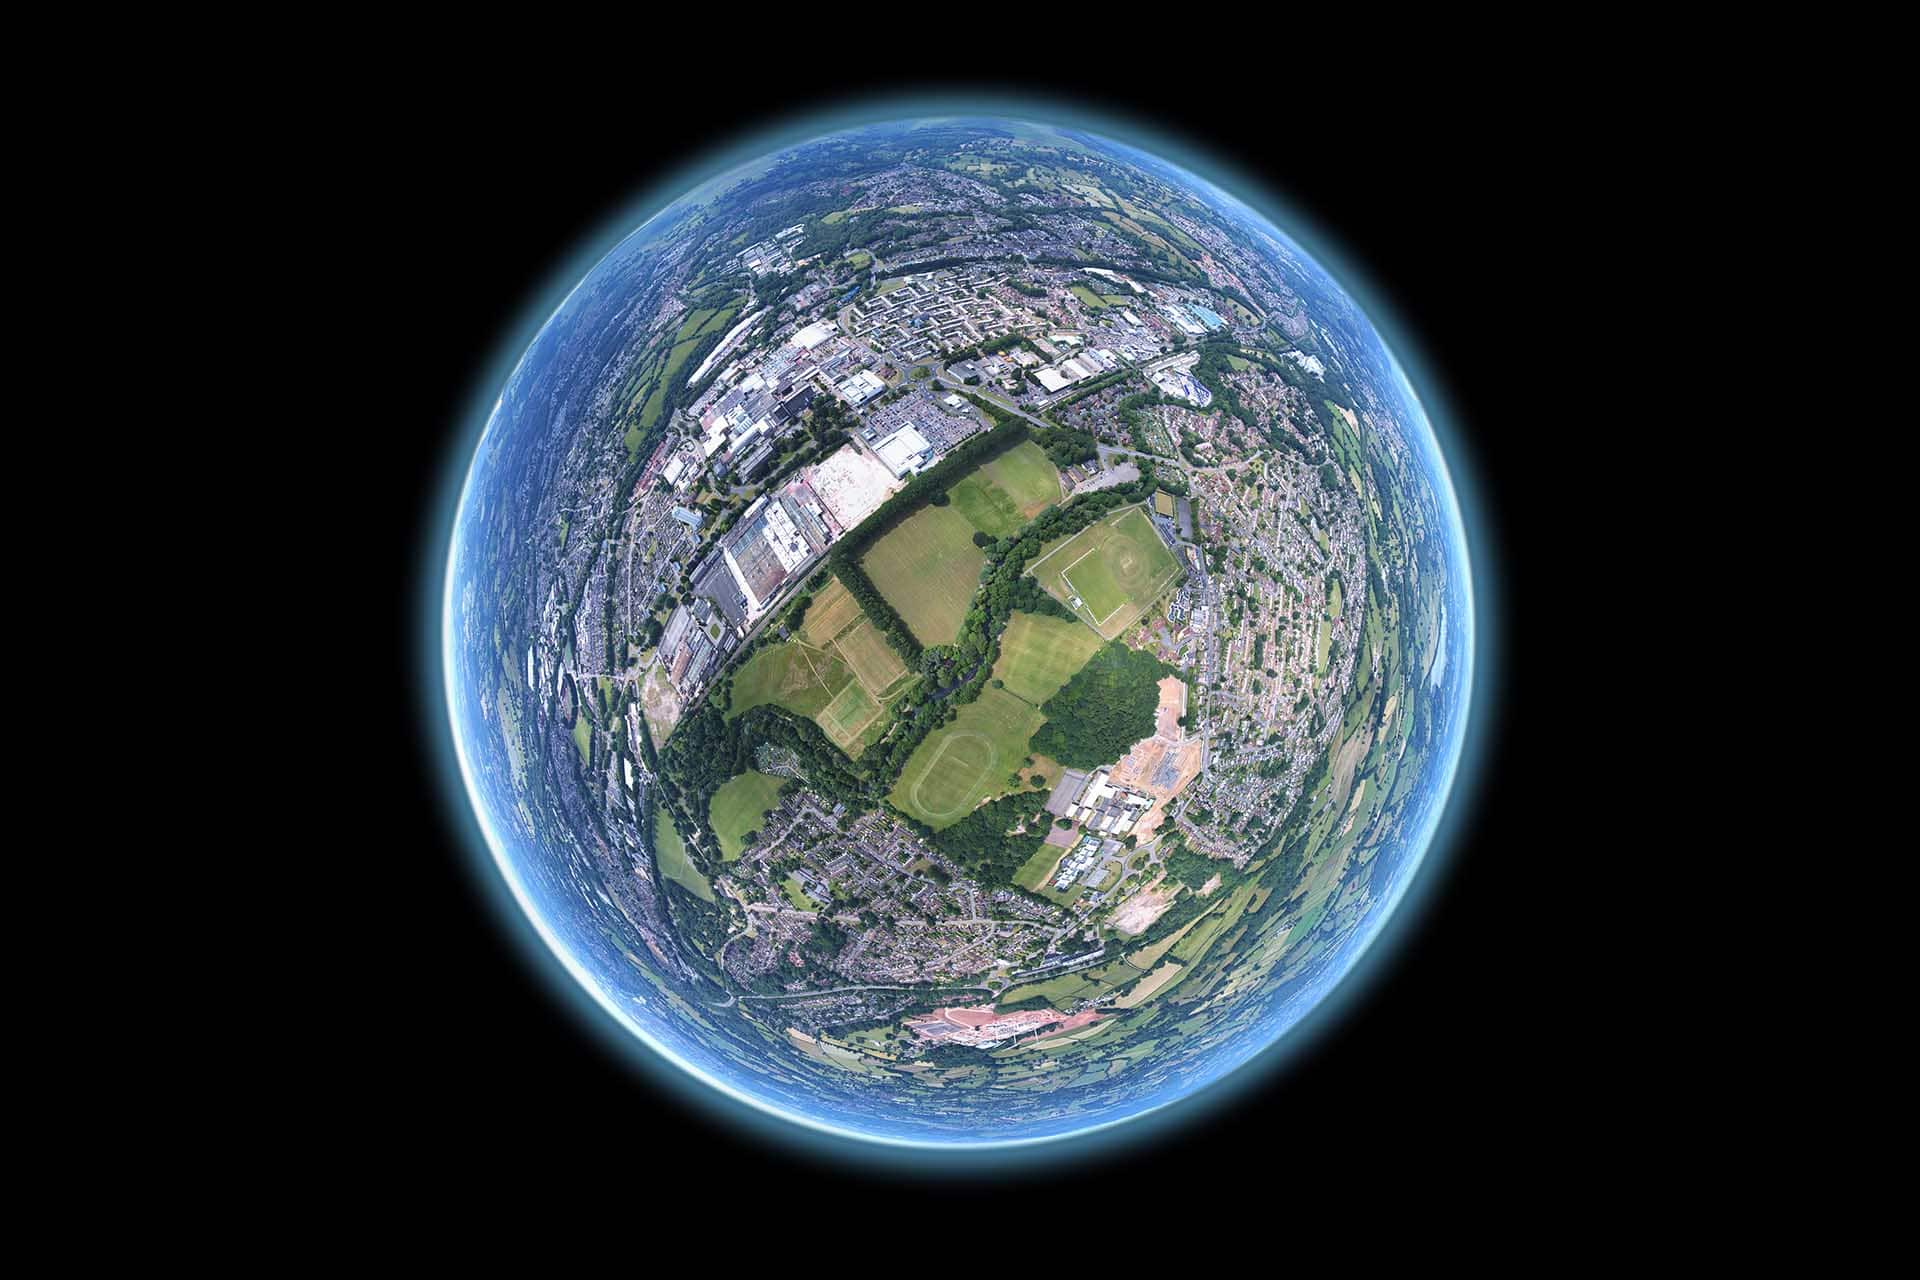 t2informatik Blog: Is the world getting more complex?